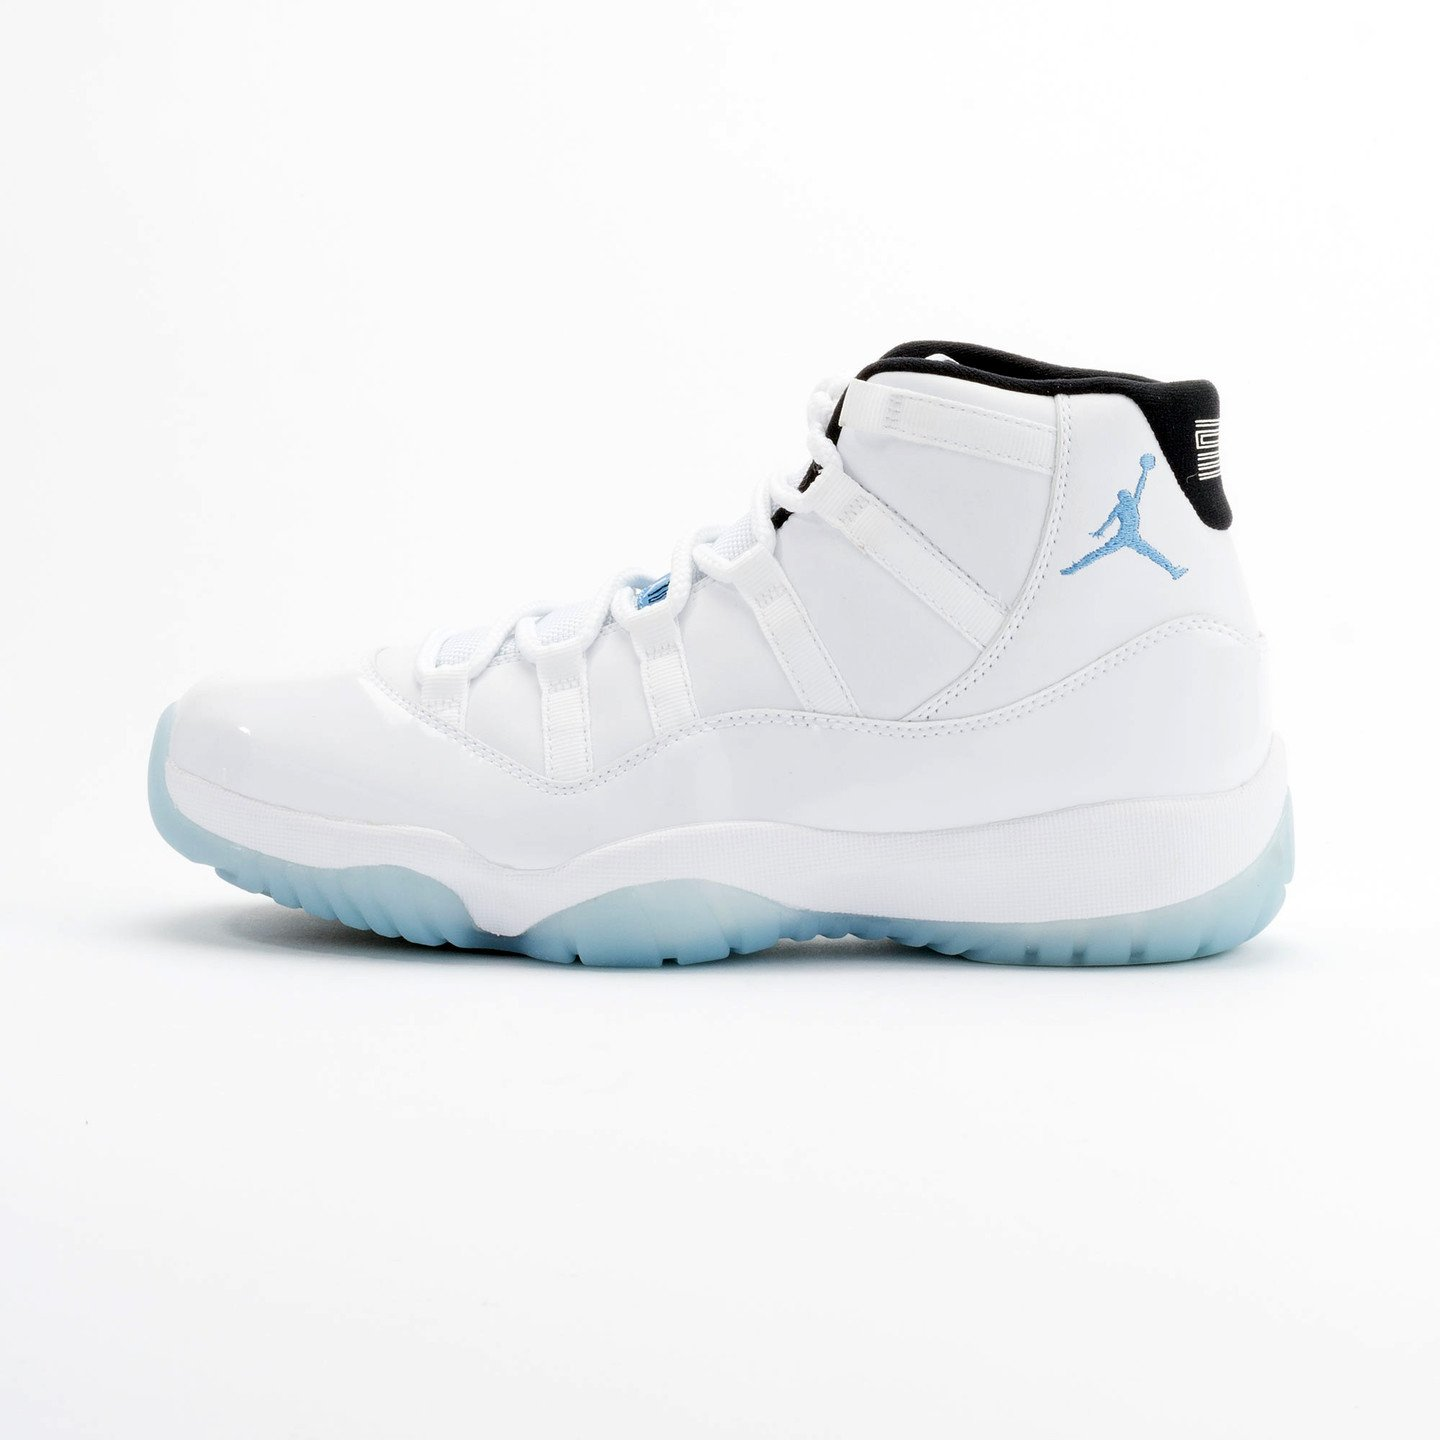 Jordan Air Jordan 11 Retro White/Legend Blue-Black 378037-117-47